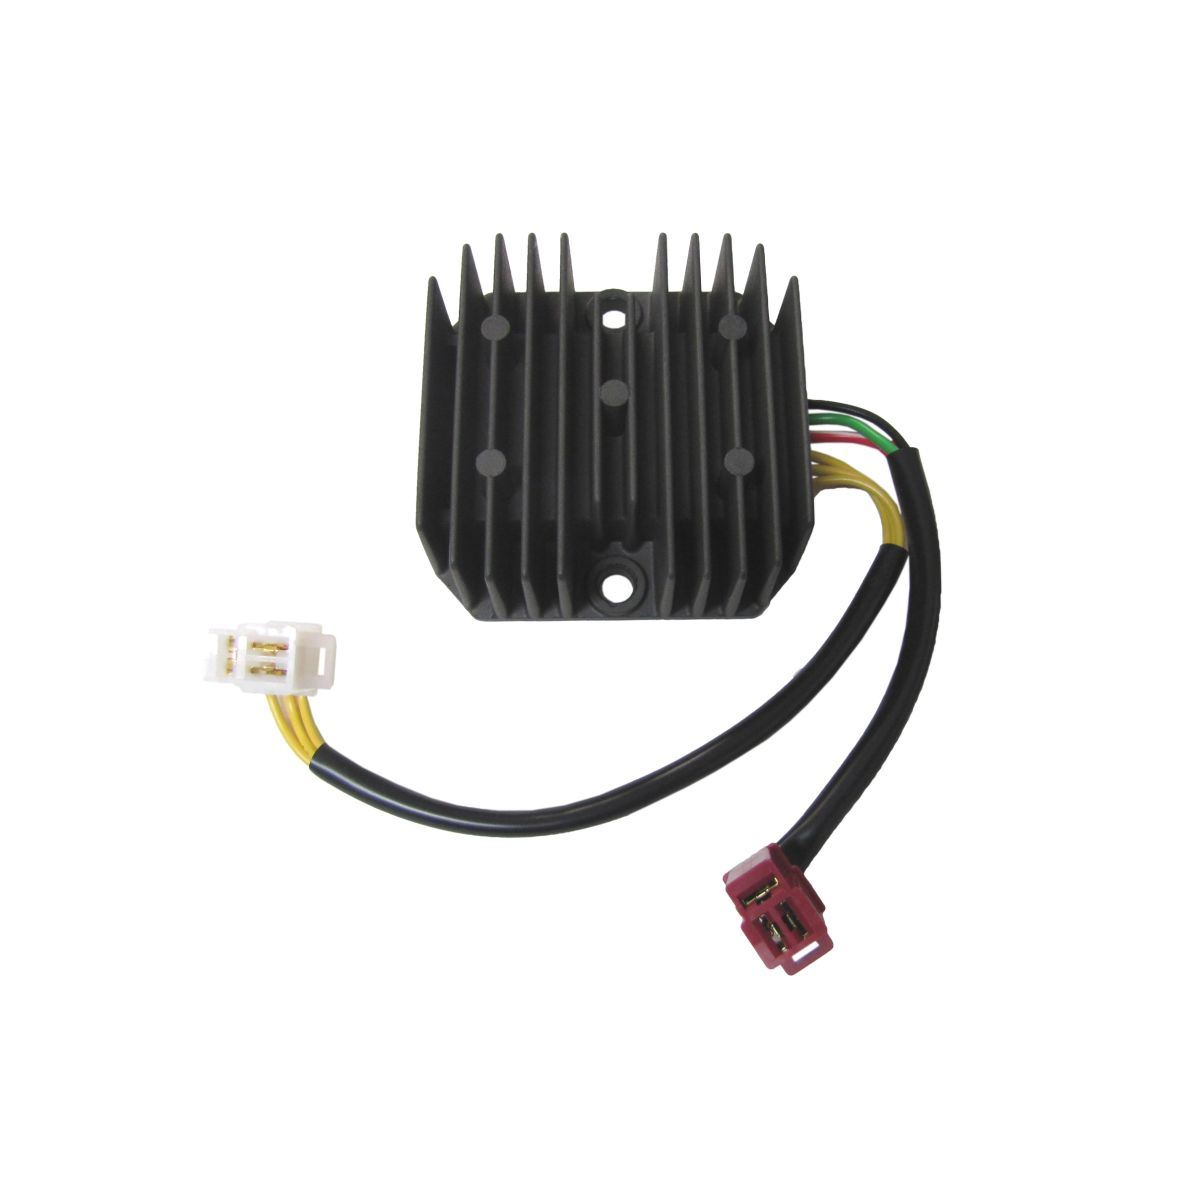 Aw Motorcycle Parts Regulator Rectifier Honda Cx500 78 84 Cx500c 81 Wiring Harness Picture Of